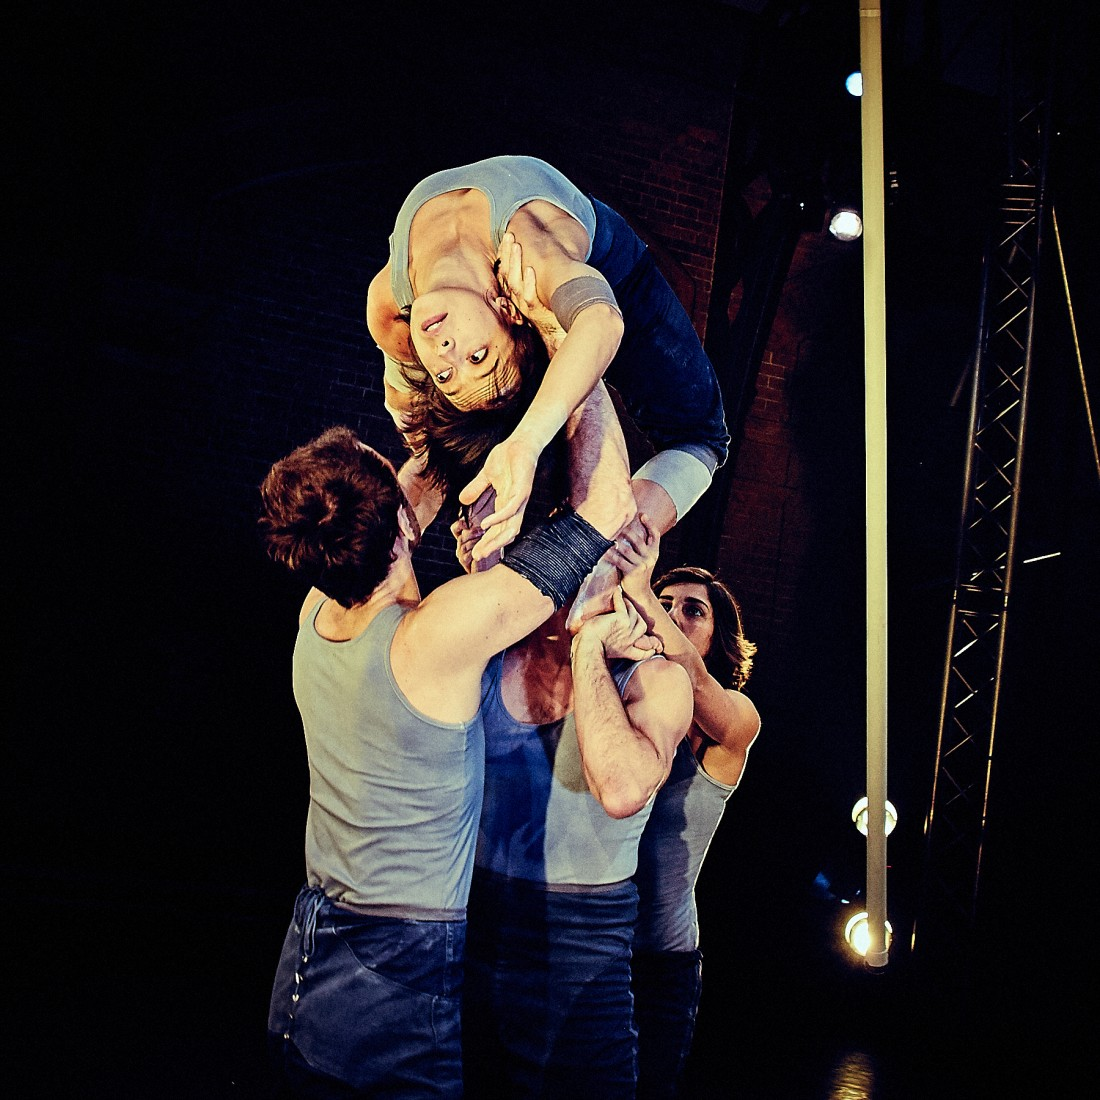 Ockham's Razor present their latest aerial theatre production 'Tipping Point' at the Nuffield Theatre, Lancaster University between 1-3 November 2016.